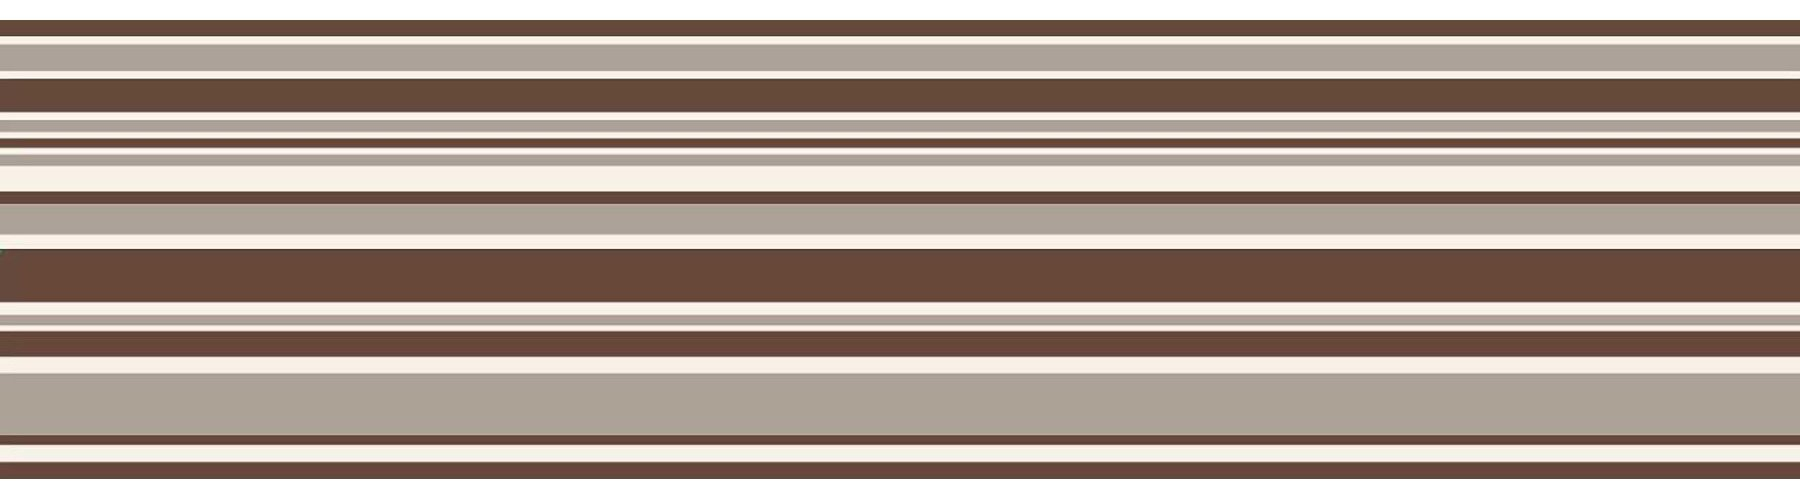 Fine Decor FDB07514S Chocolate Horizontal Stripe Peel and Stick Border